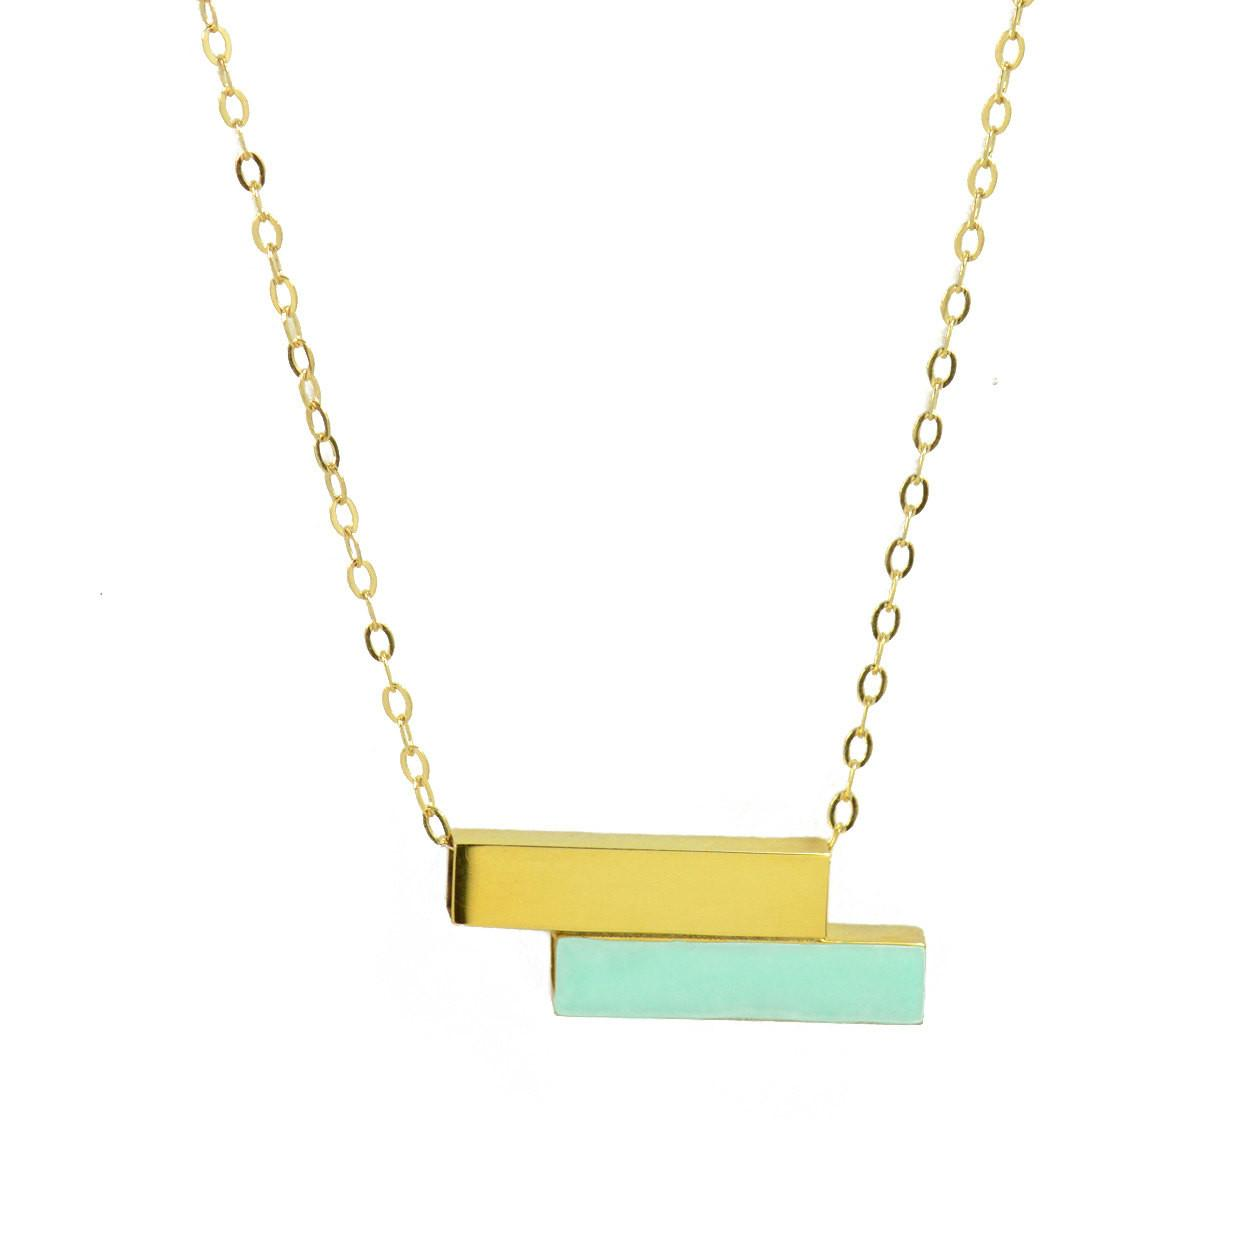 Gold Bar Mint Green Enamel Necklace Minimal Modern